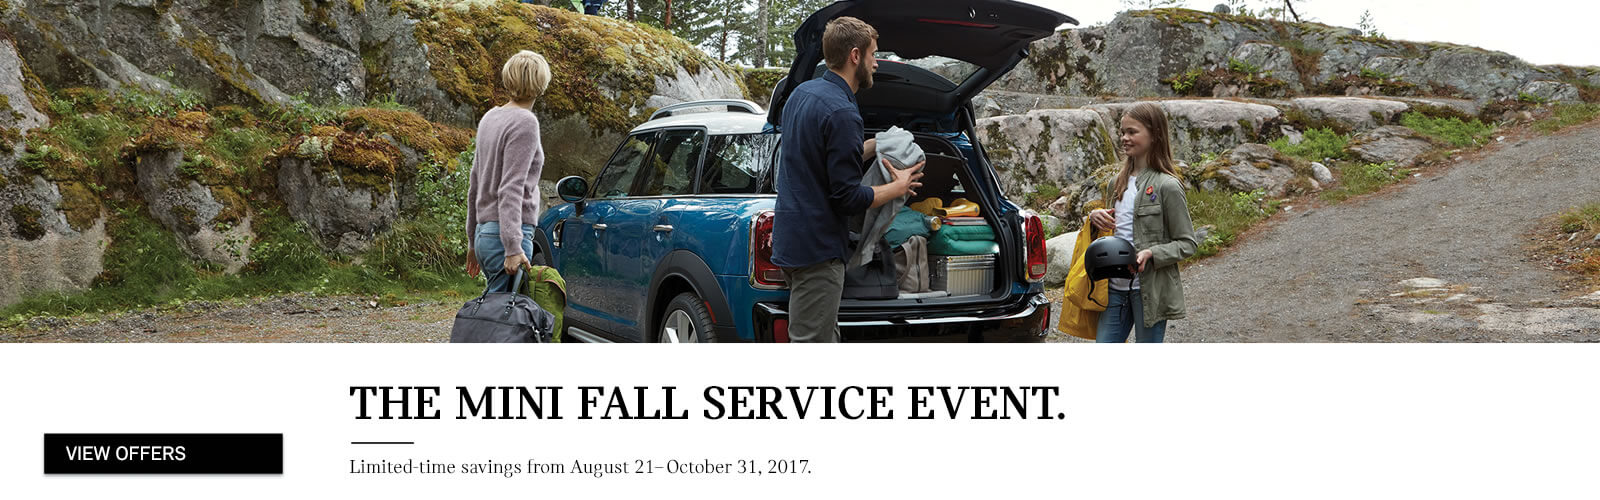 MINI Fall Service Event